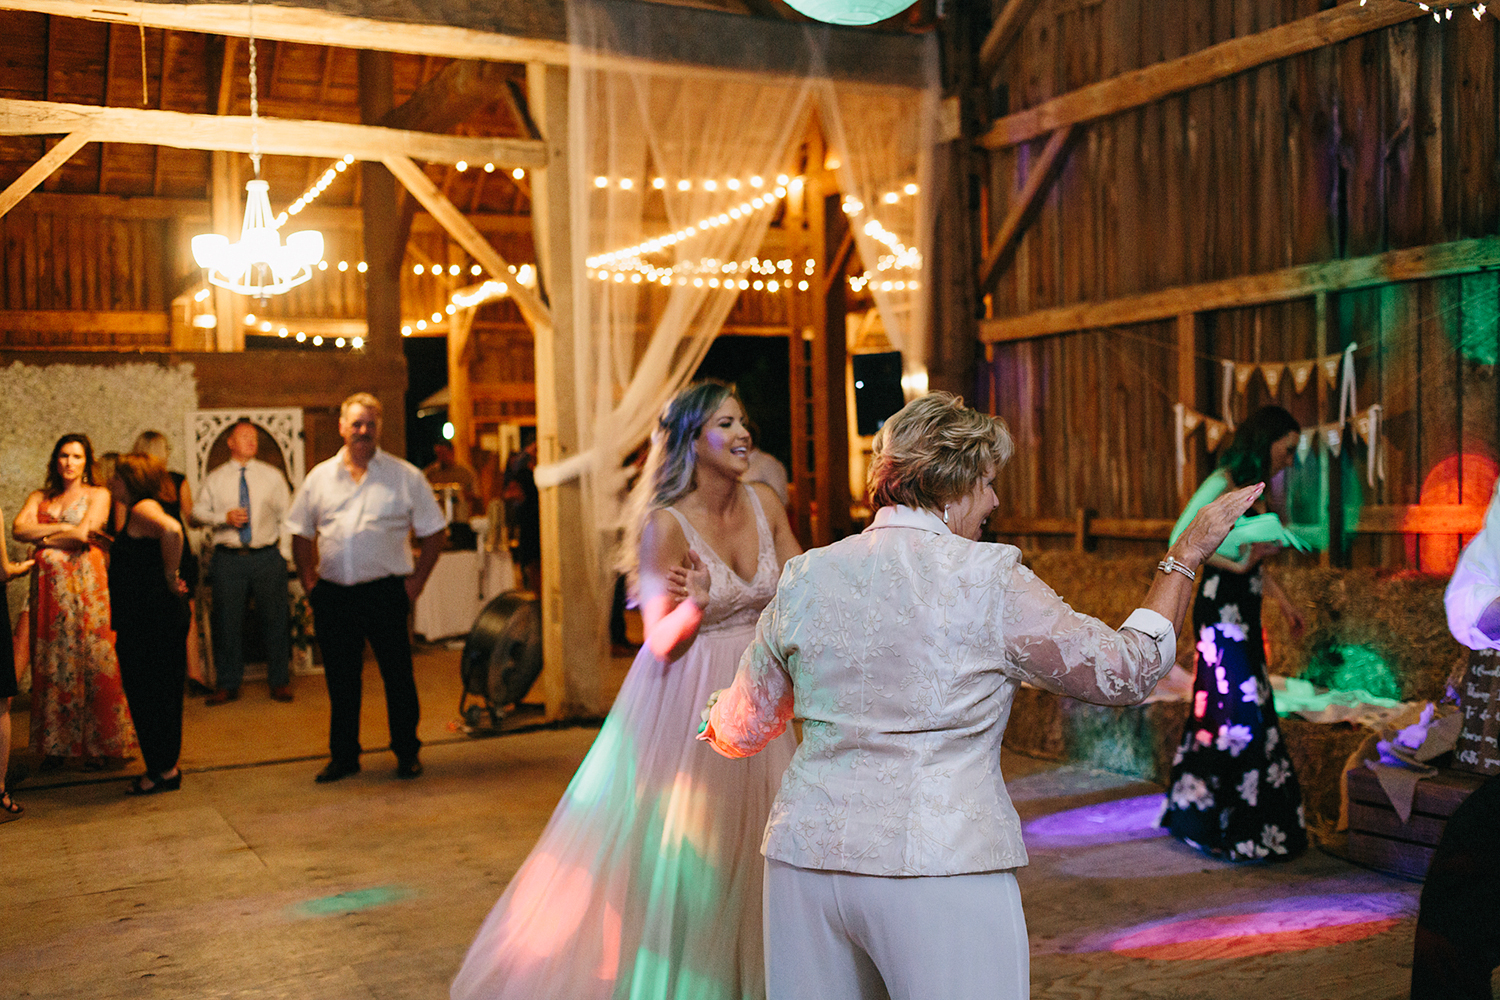 Documentary-Wedding-Photographers-in-Toronto-Candid-Natural-Dowswell-Barn-Wedding-Rustic-GTA-Muskoka-Farm-romantic-huge-barn-reception-party-bridesmaid-candid.jpg